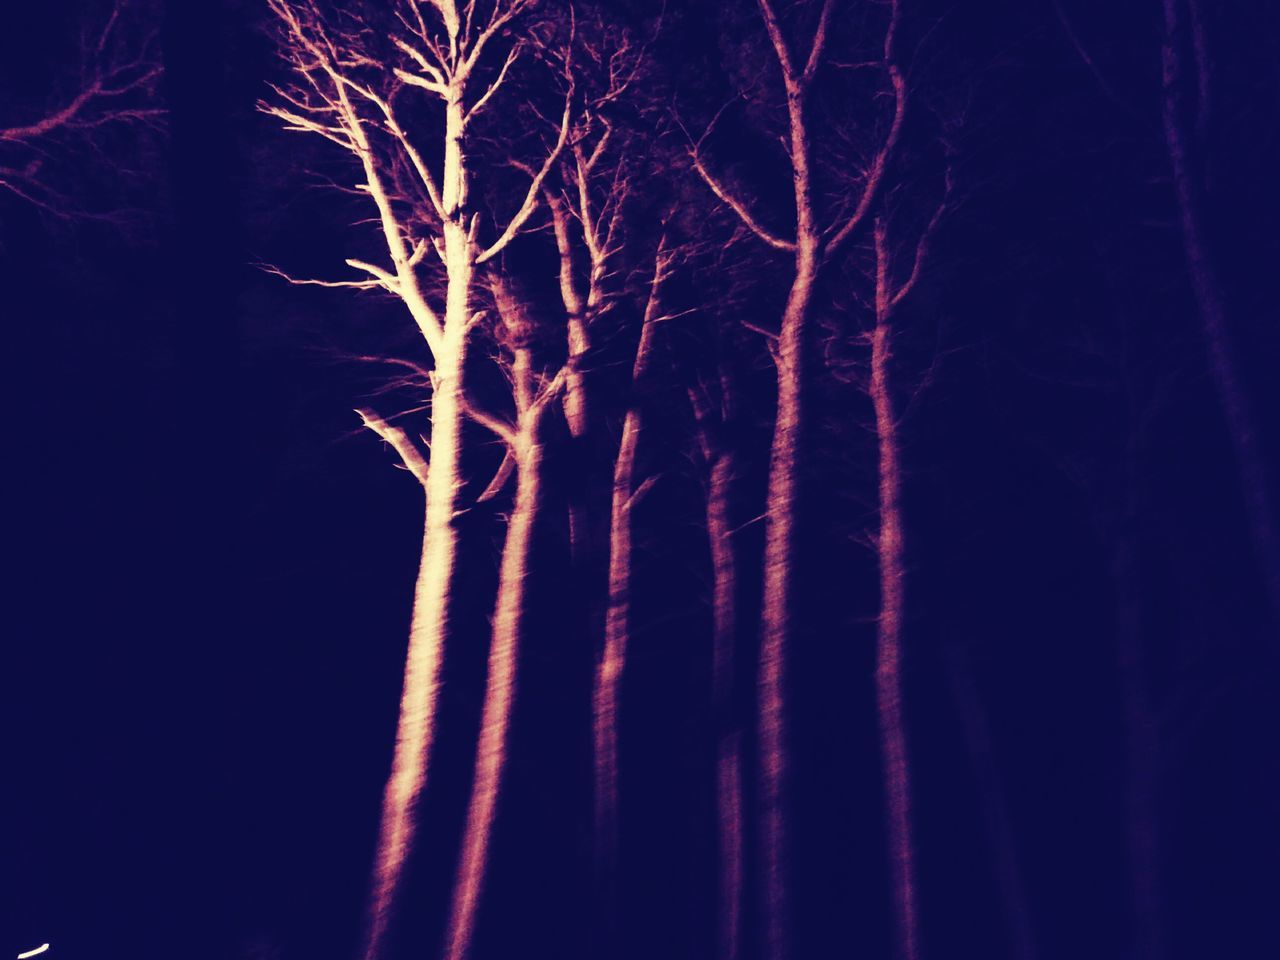 night, low angle view, no people, outdoors, nature, bare tree, illuminated, tree, sky, beauty in nature